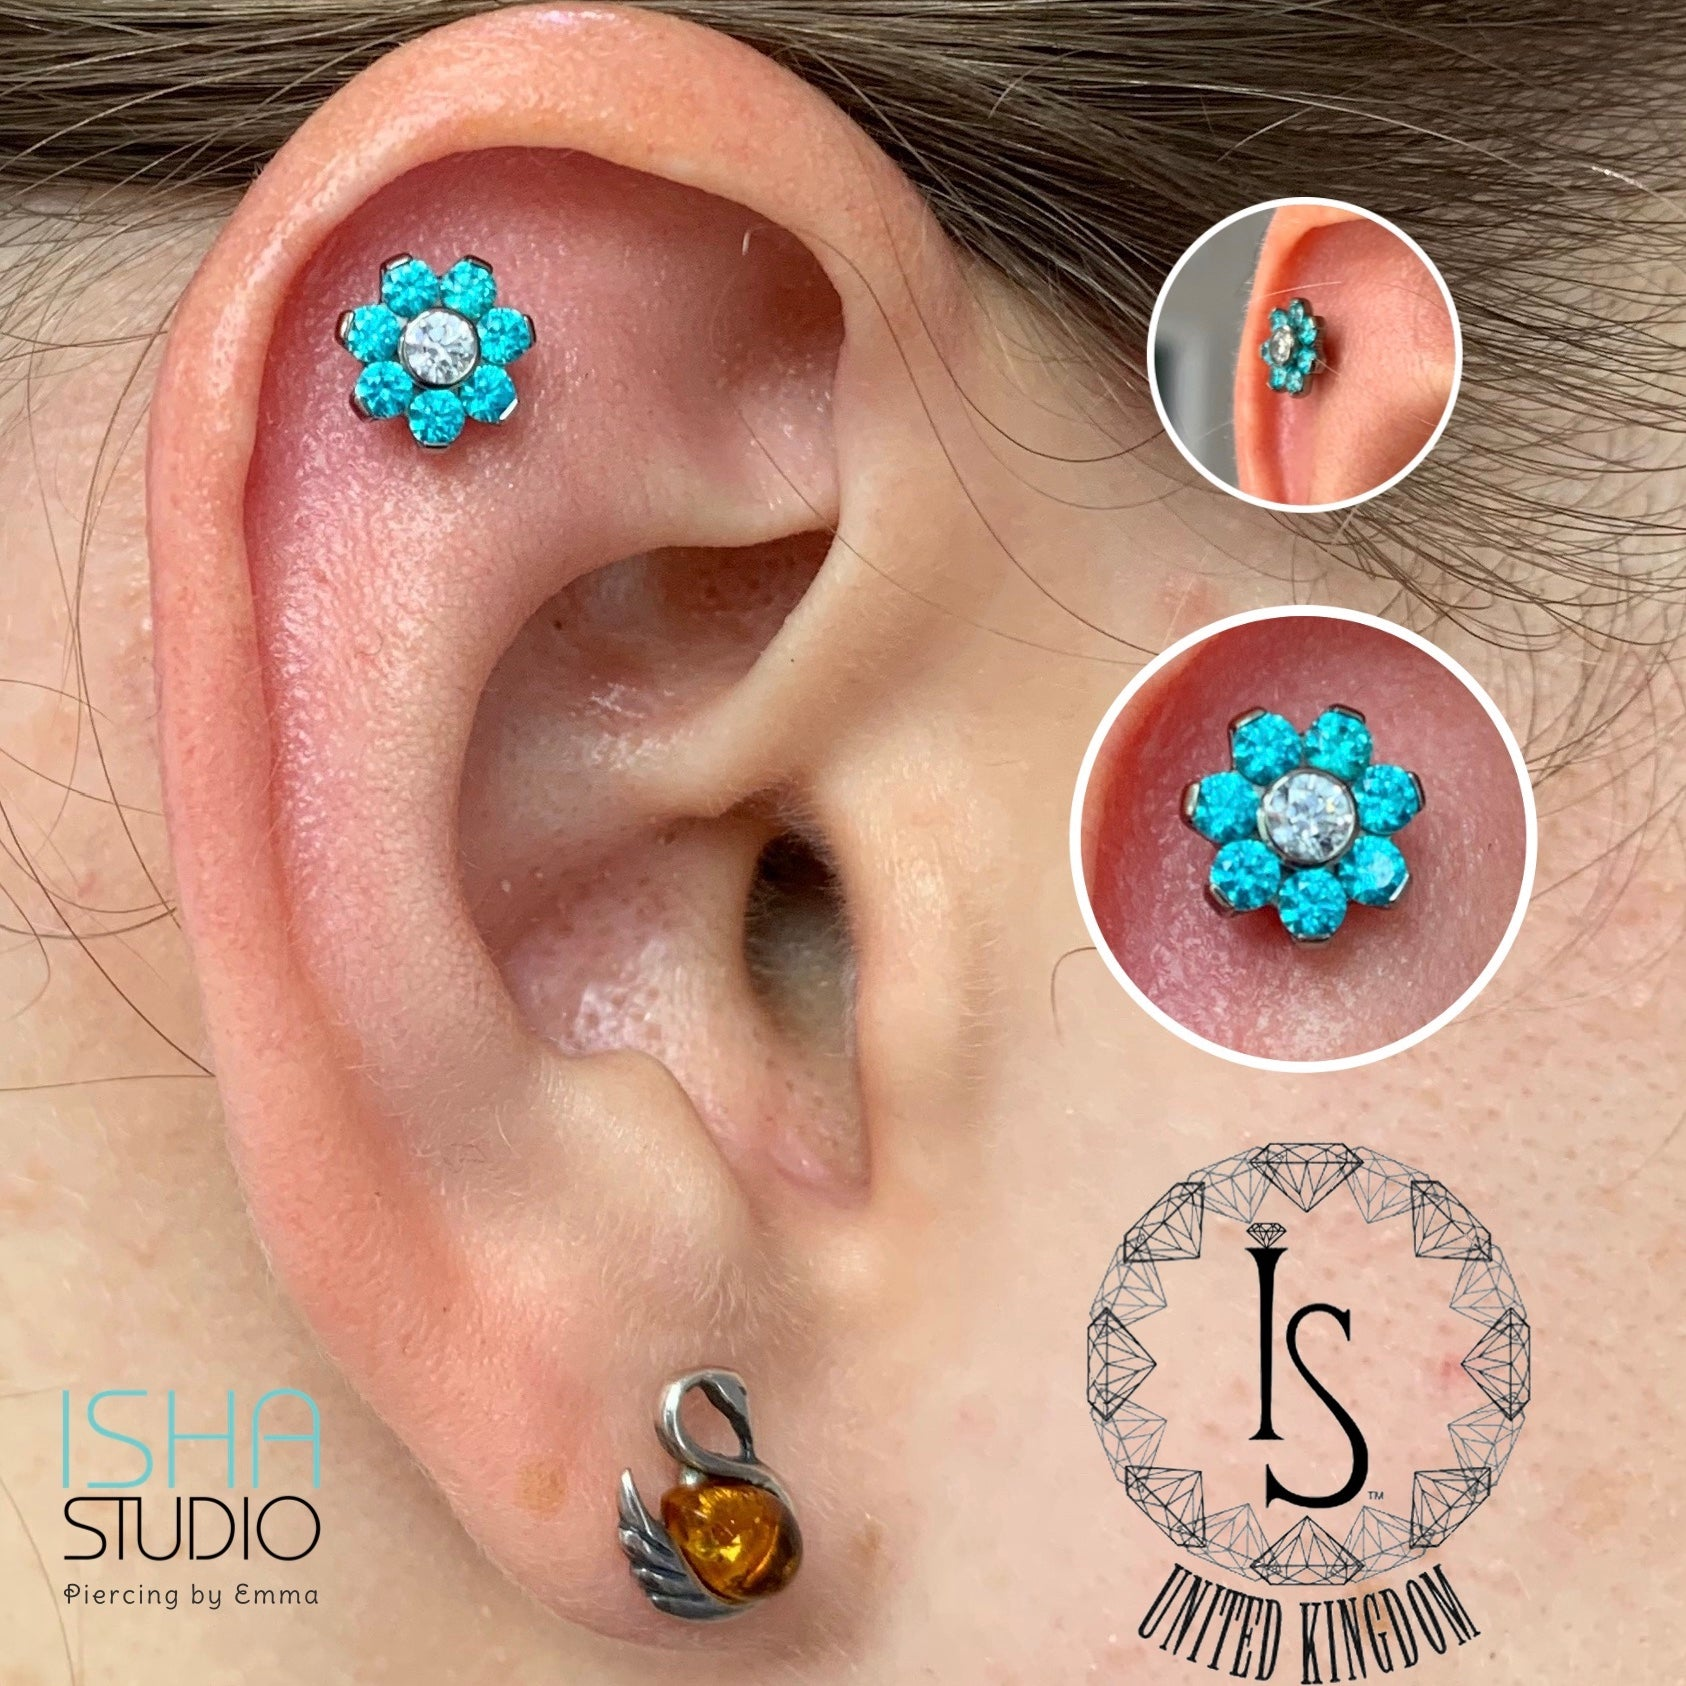 industrial strength flower gem flat helix piercing by emma at isha studio